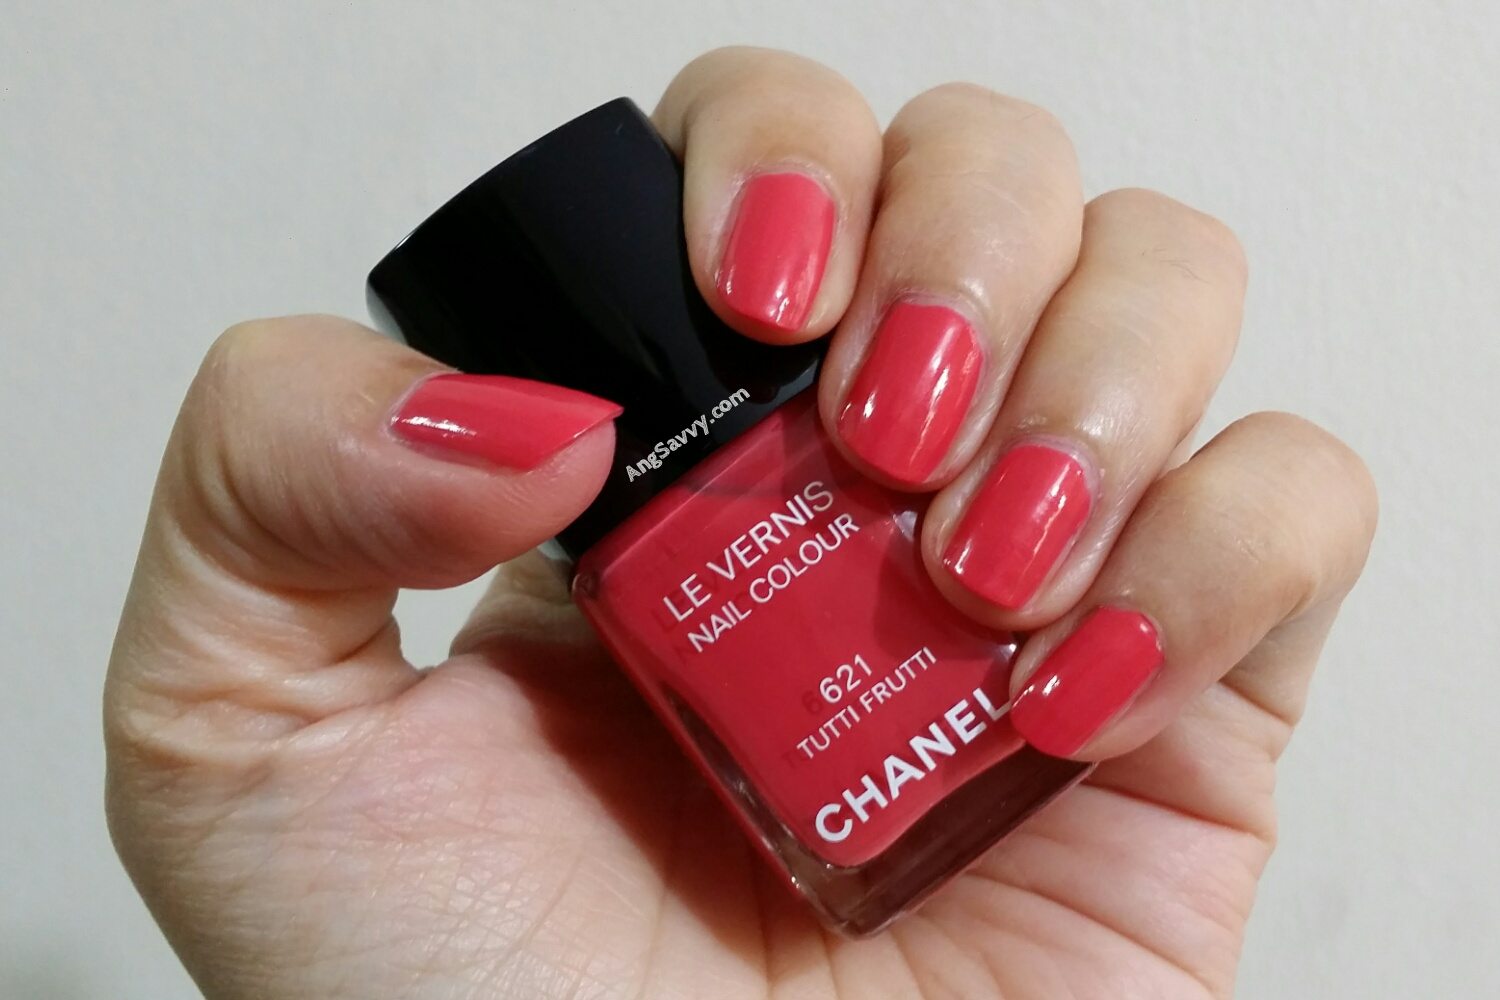 Chanel Tutti Frutti Nail Polish Swatch